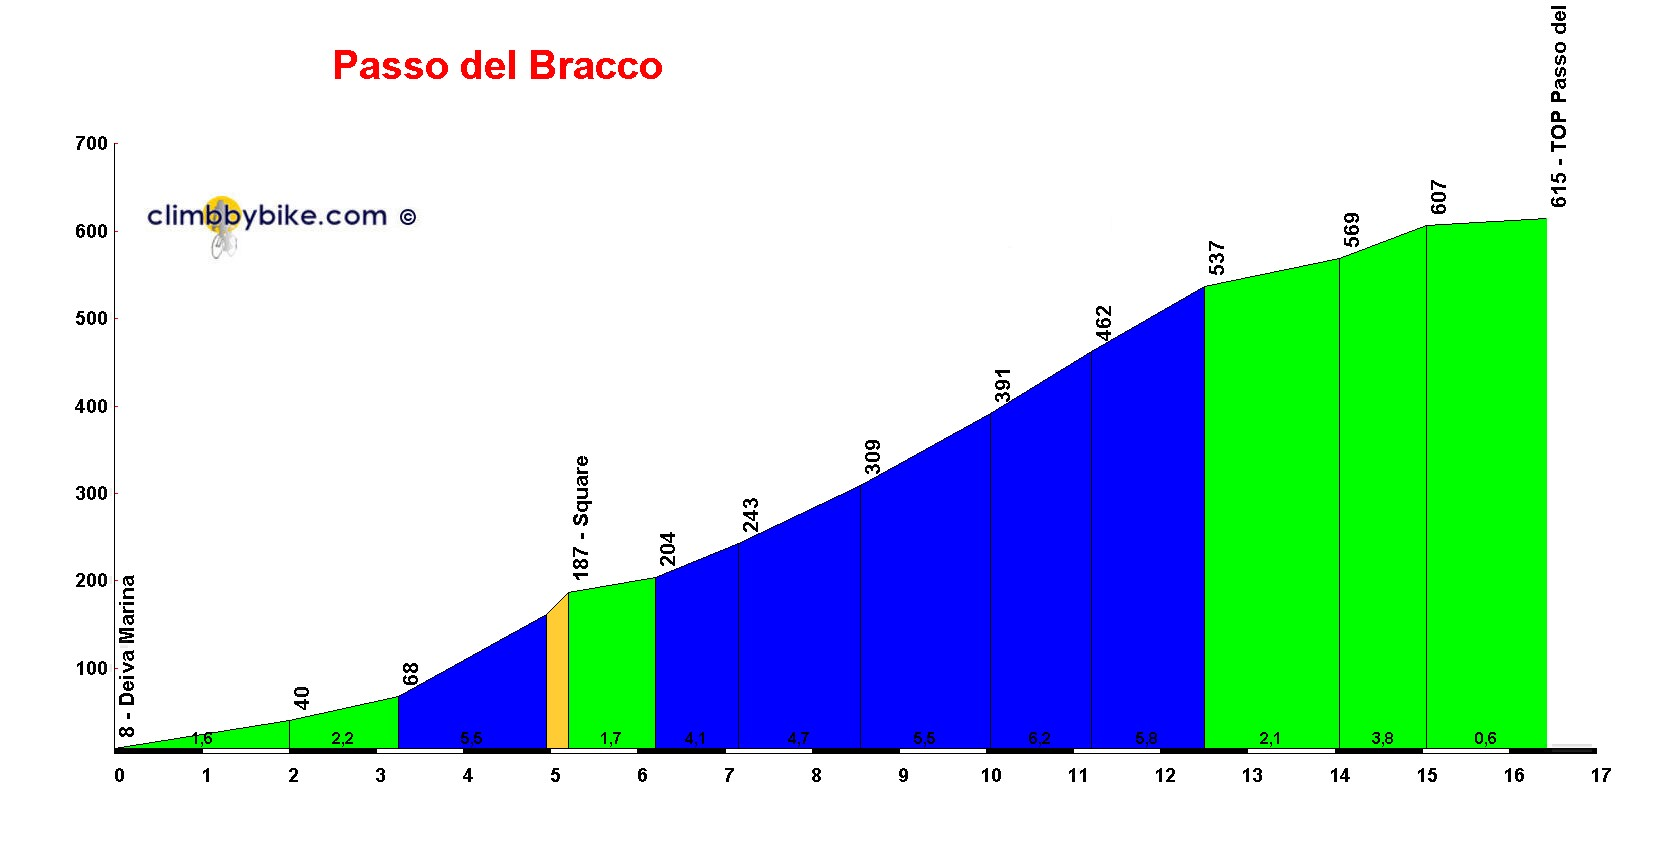 Elevation profile for Passo del Bracco